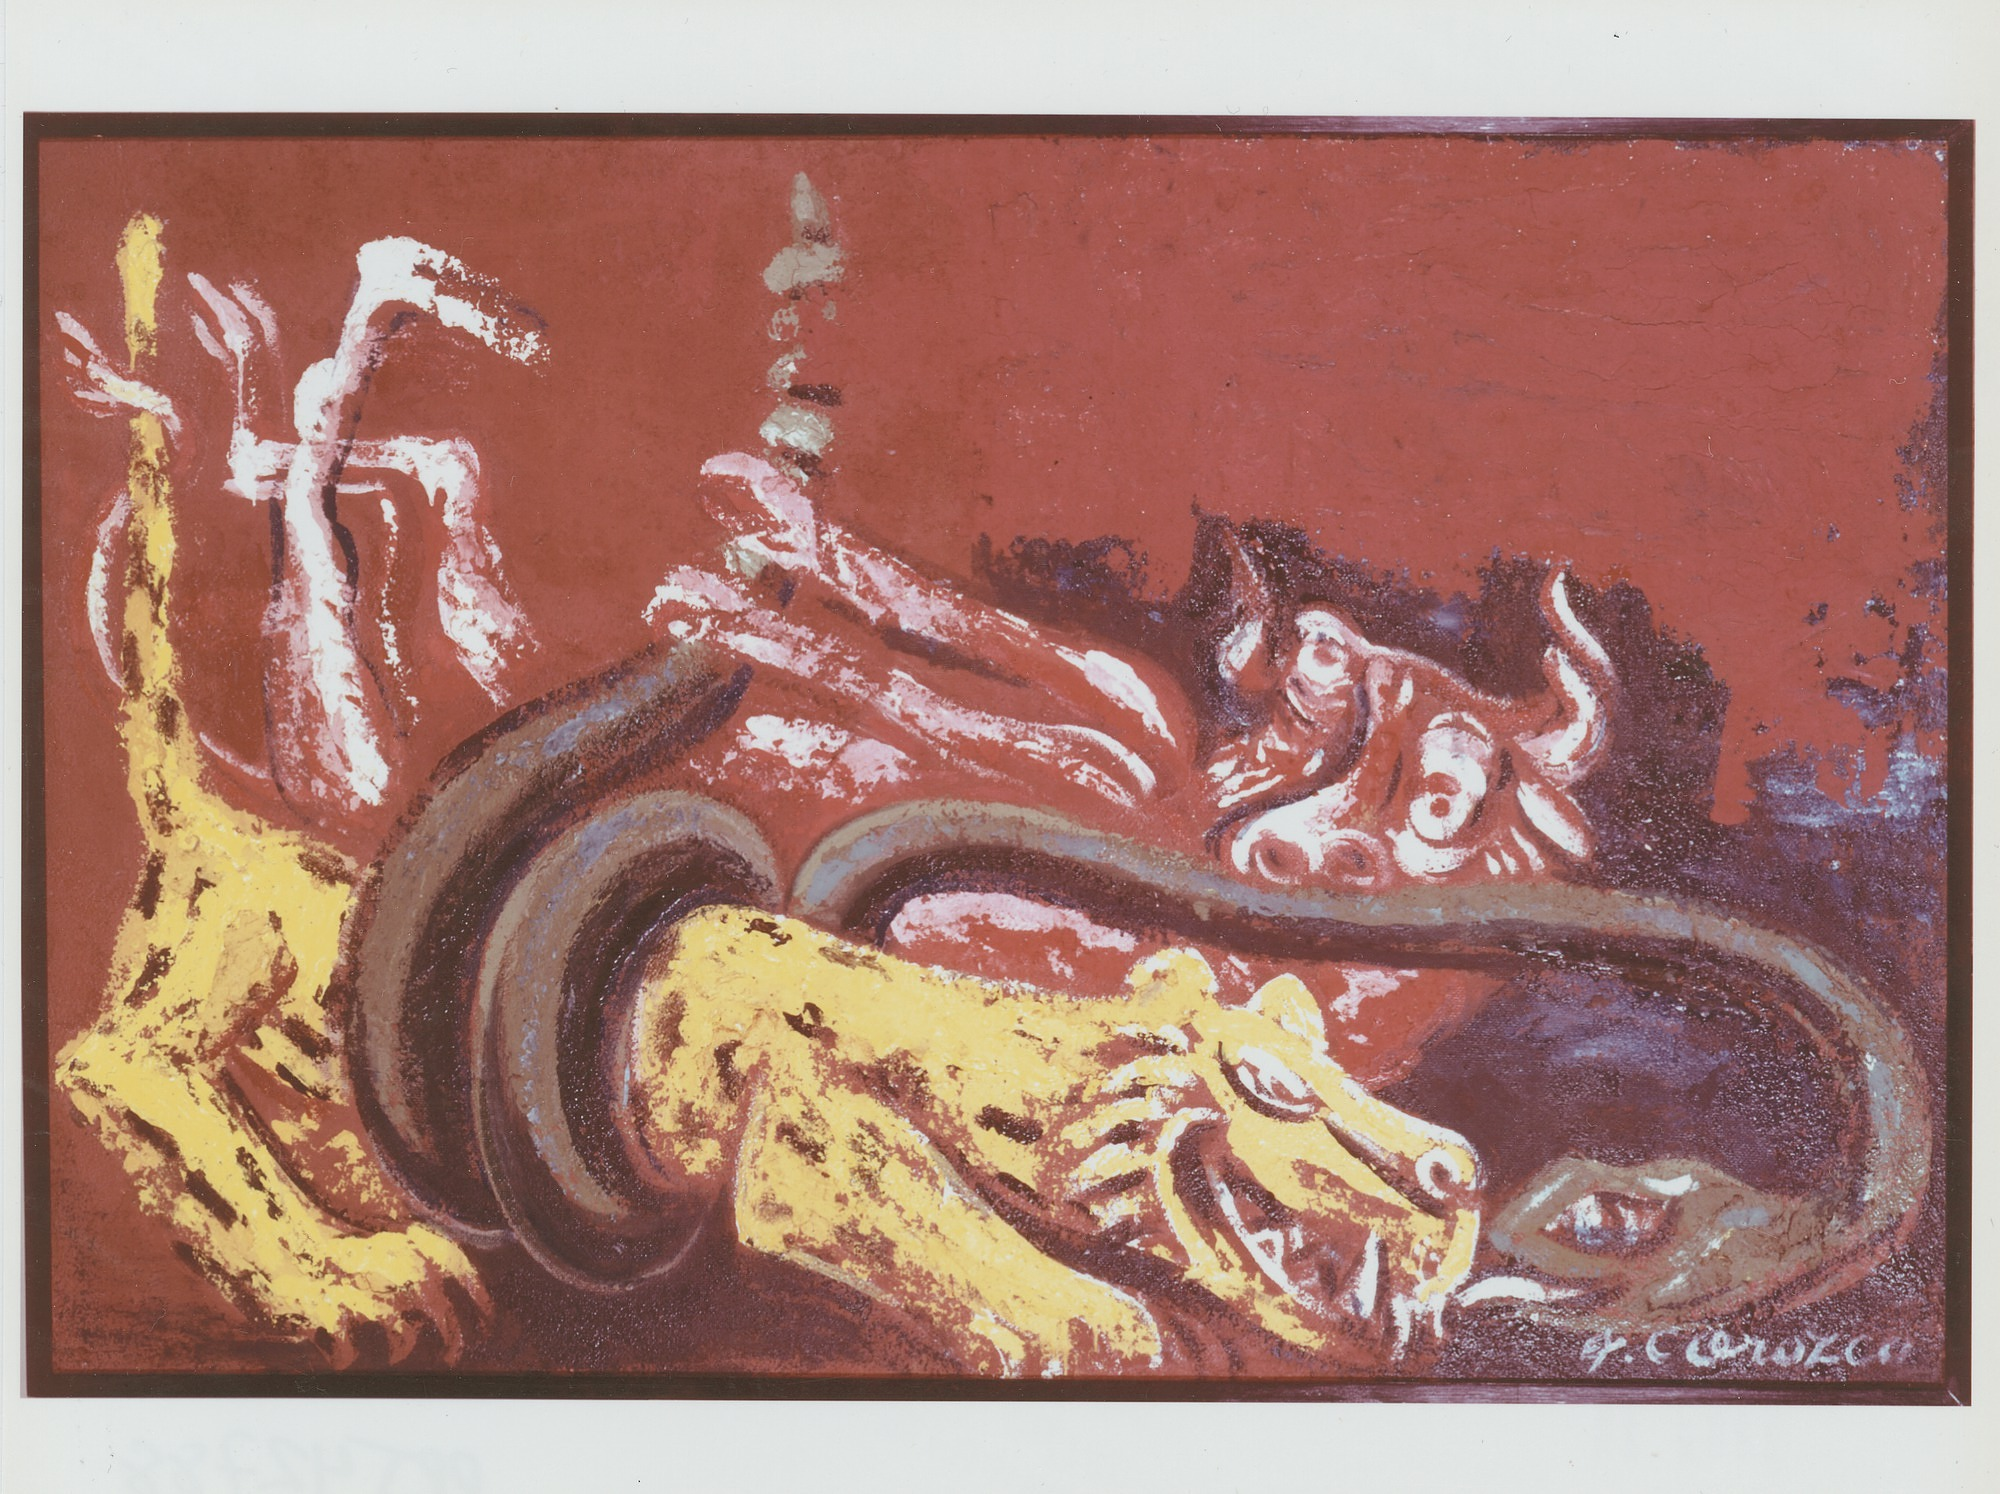 Jaguar, Cow and Serpent [painting] / (photographed by Peter A. Juley & Son)